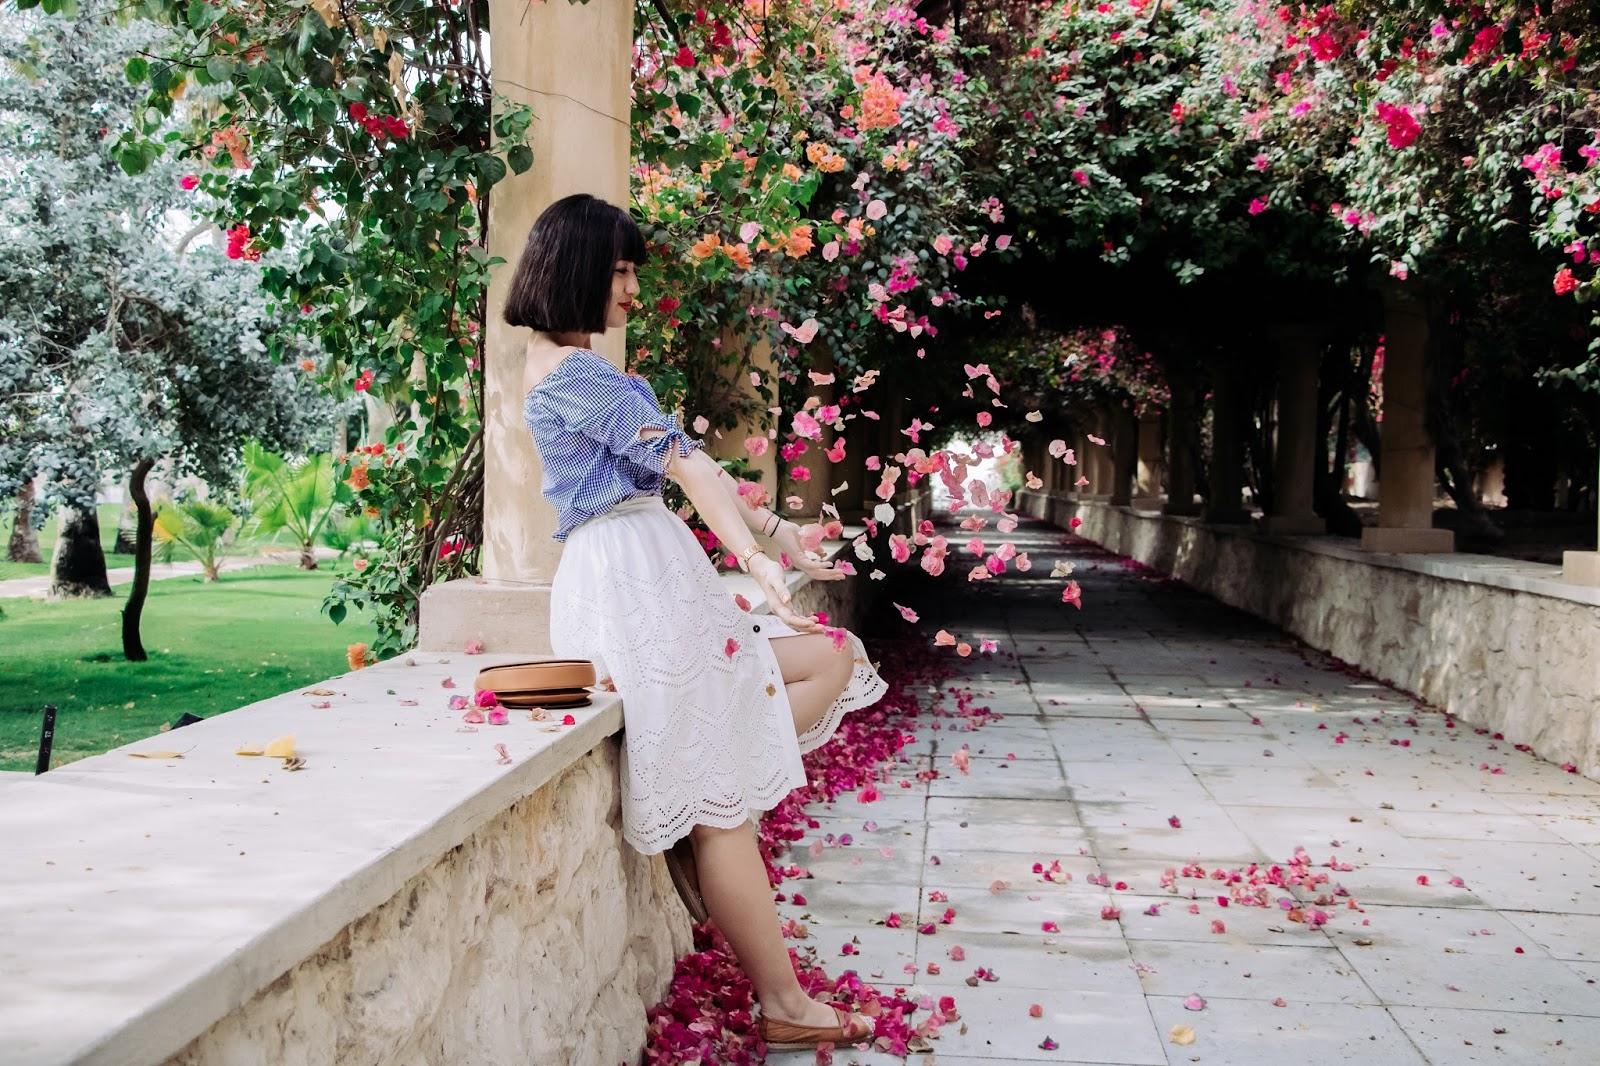 fashionphotography - Flower Arch